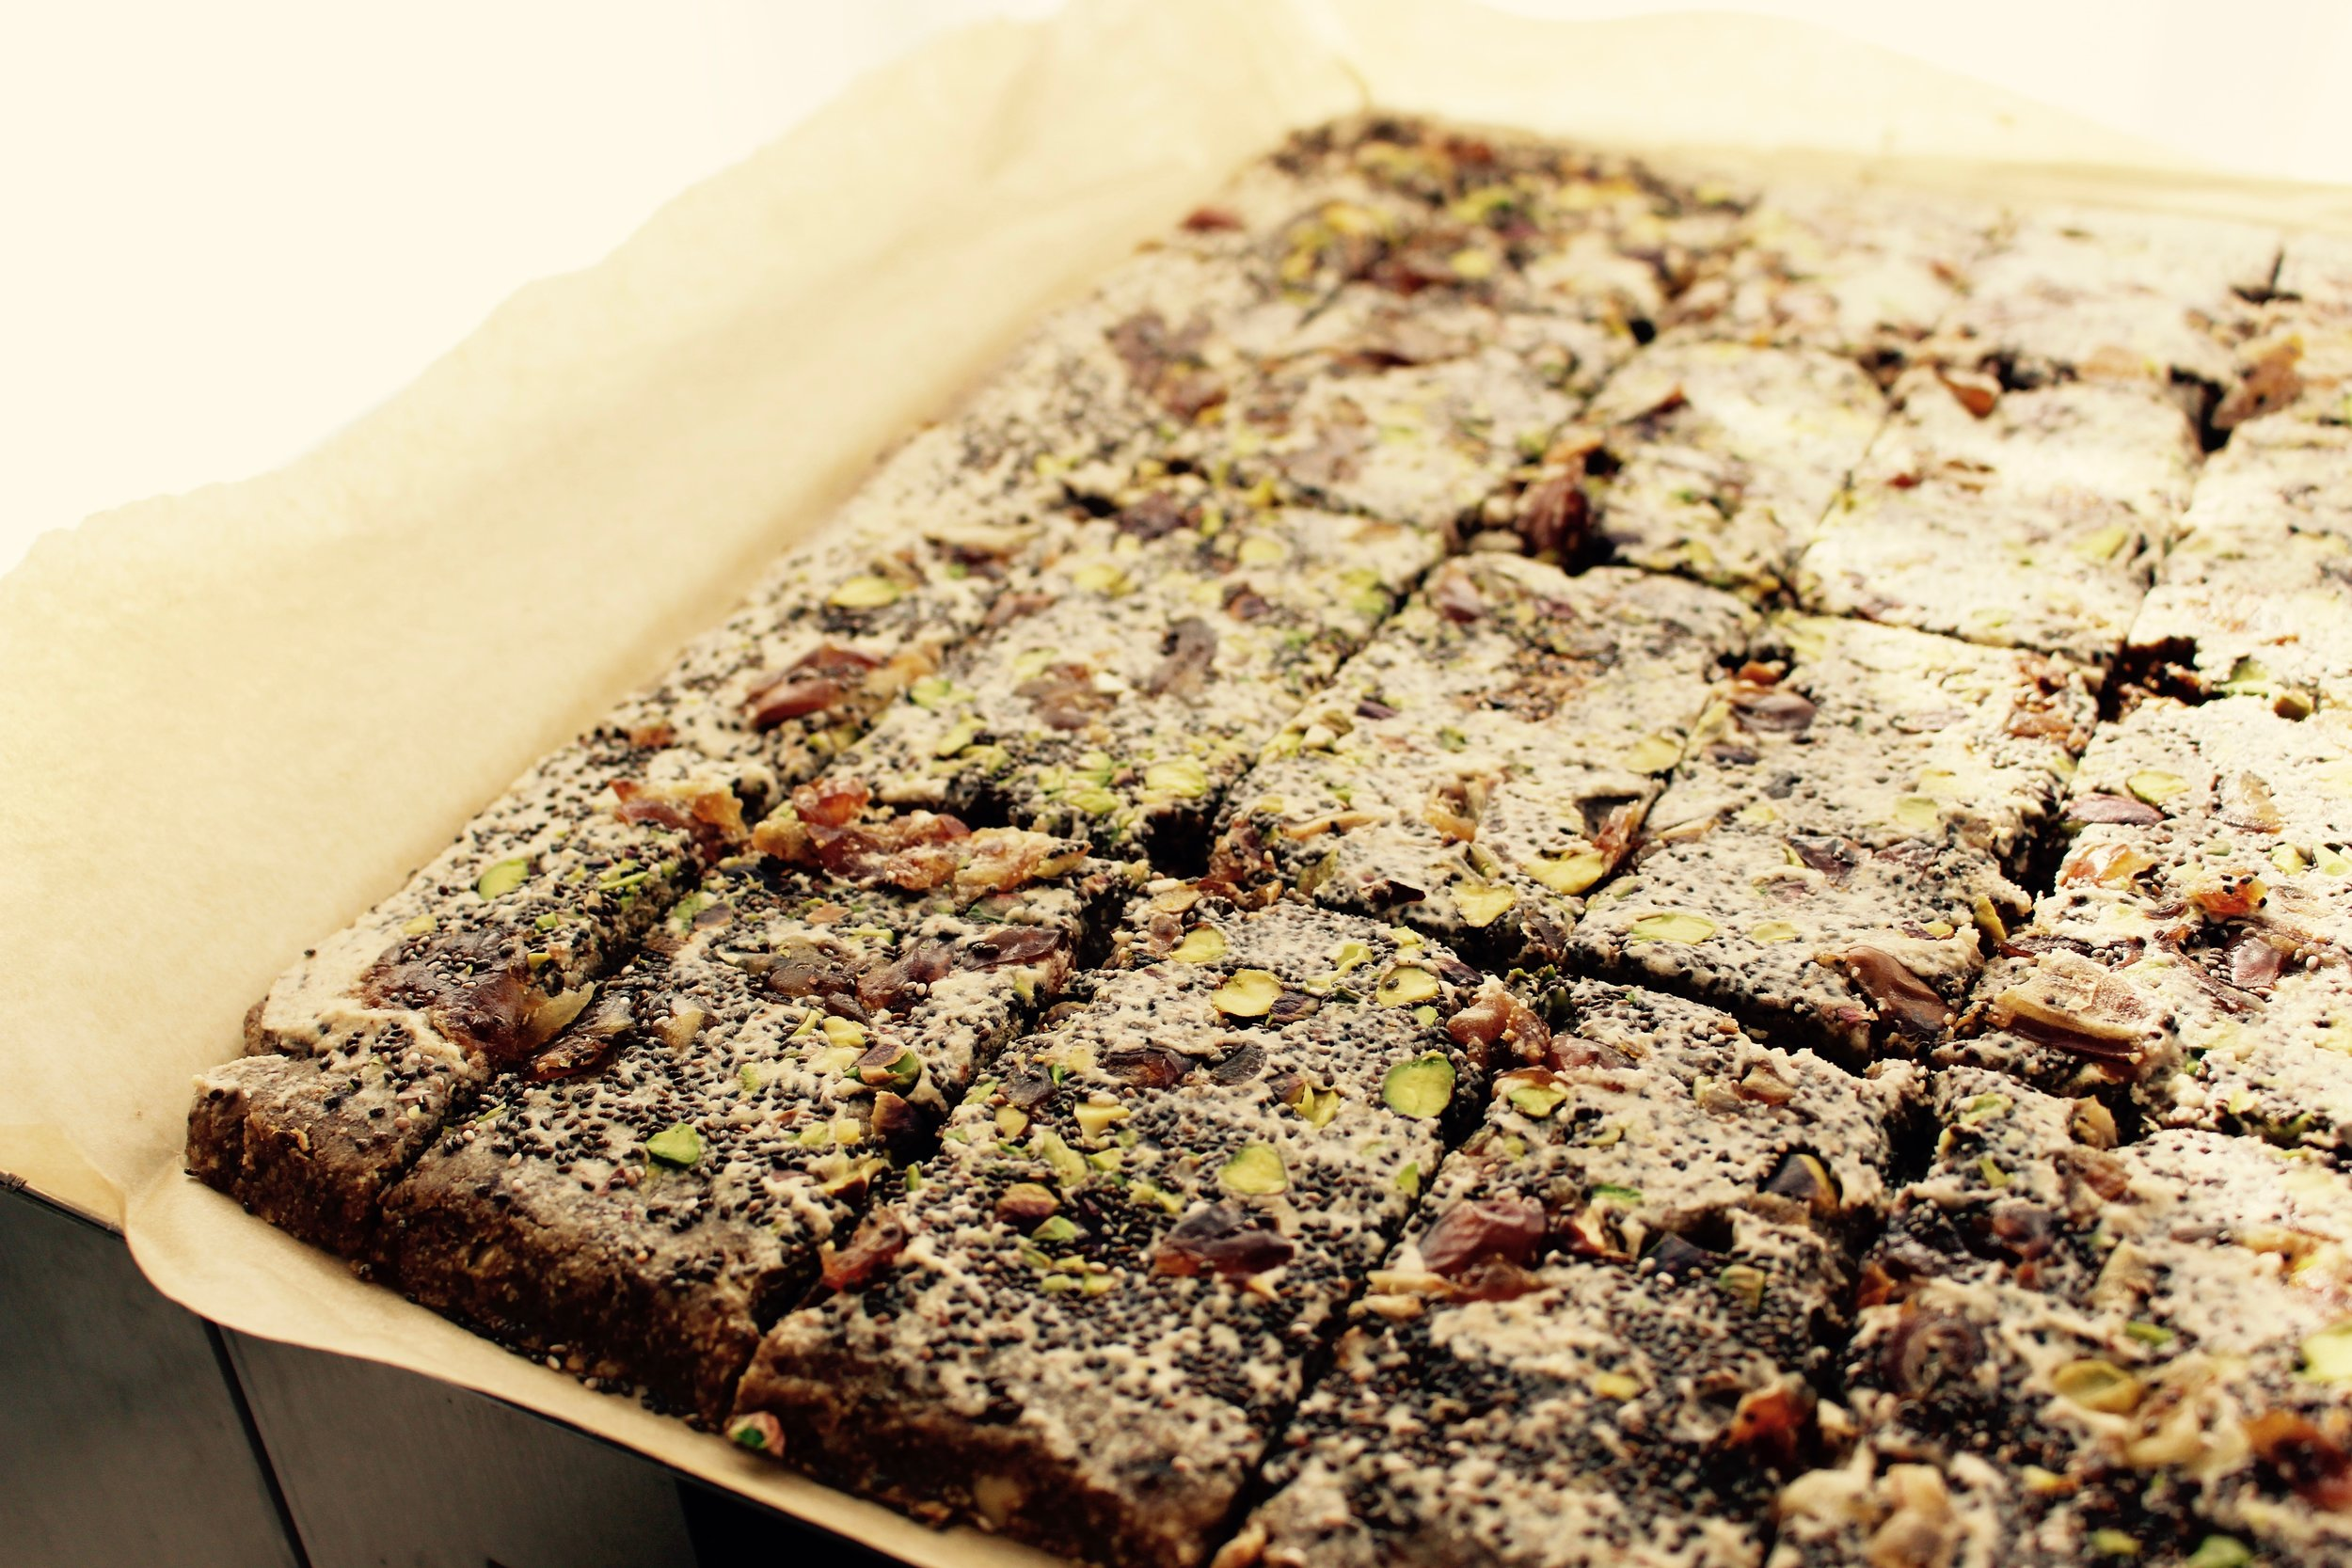 I invented a brand new recipe for some serious energy bars with plenties of super foods, nuts, dried fruits and self made peanut butter. This one deserves to be featured in my new cook book :-)! Yum....